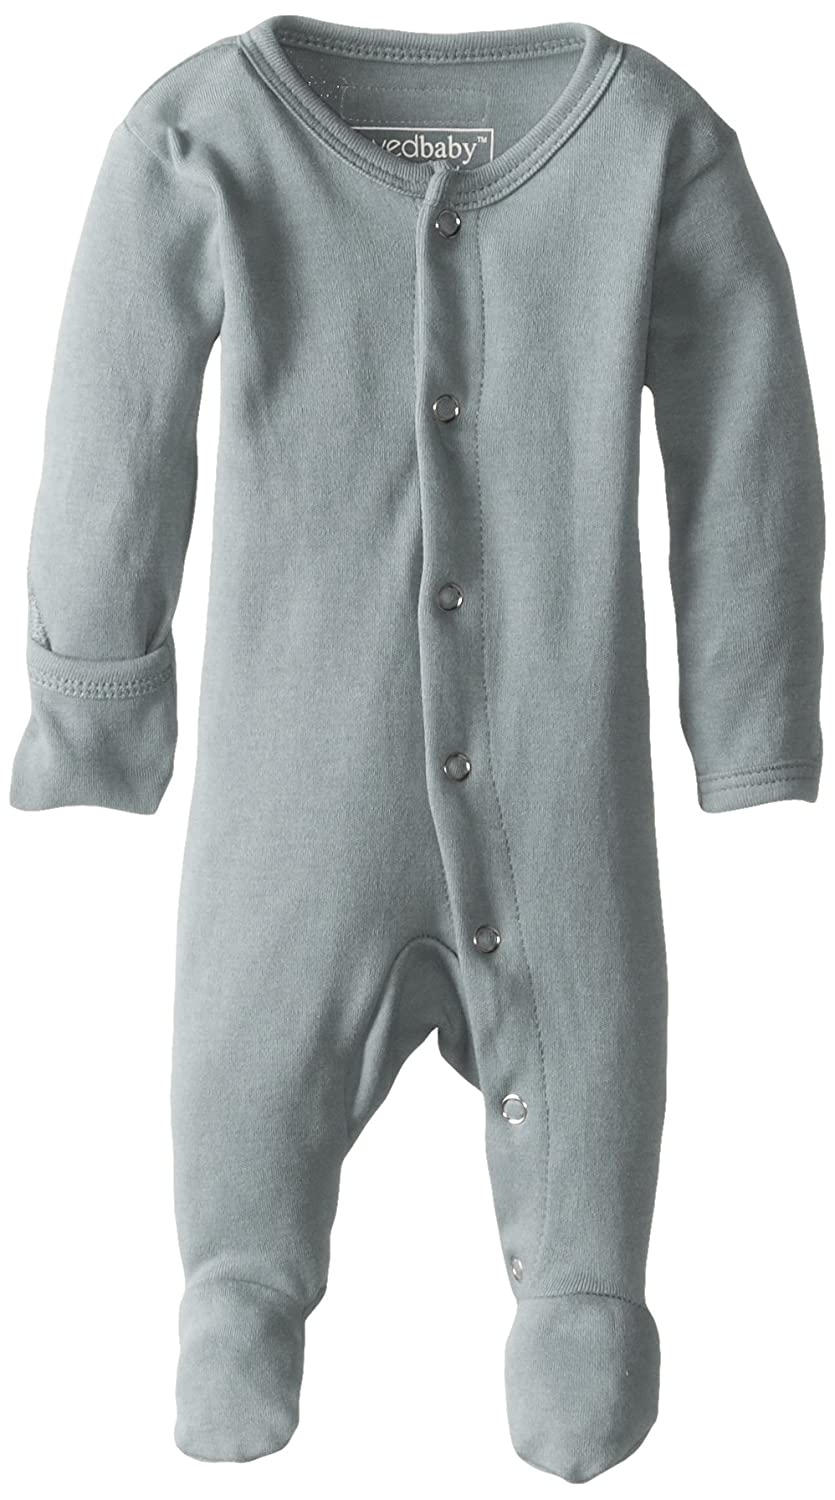 L'ovedbaby Unisex Organic Cotton Footed Overall